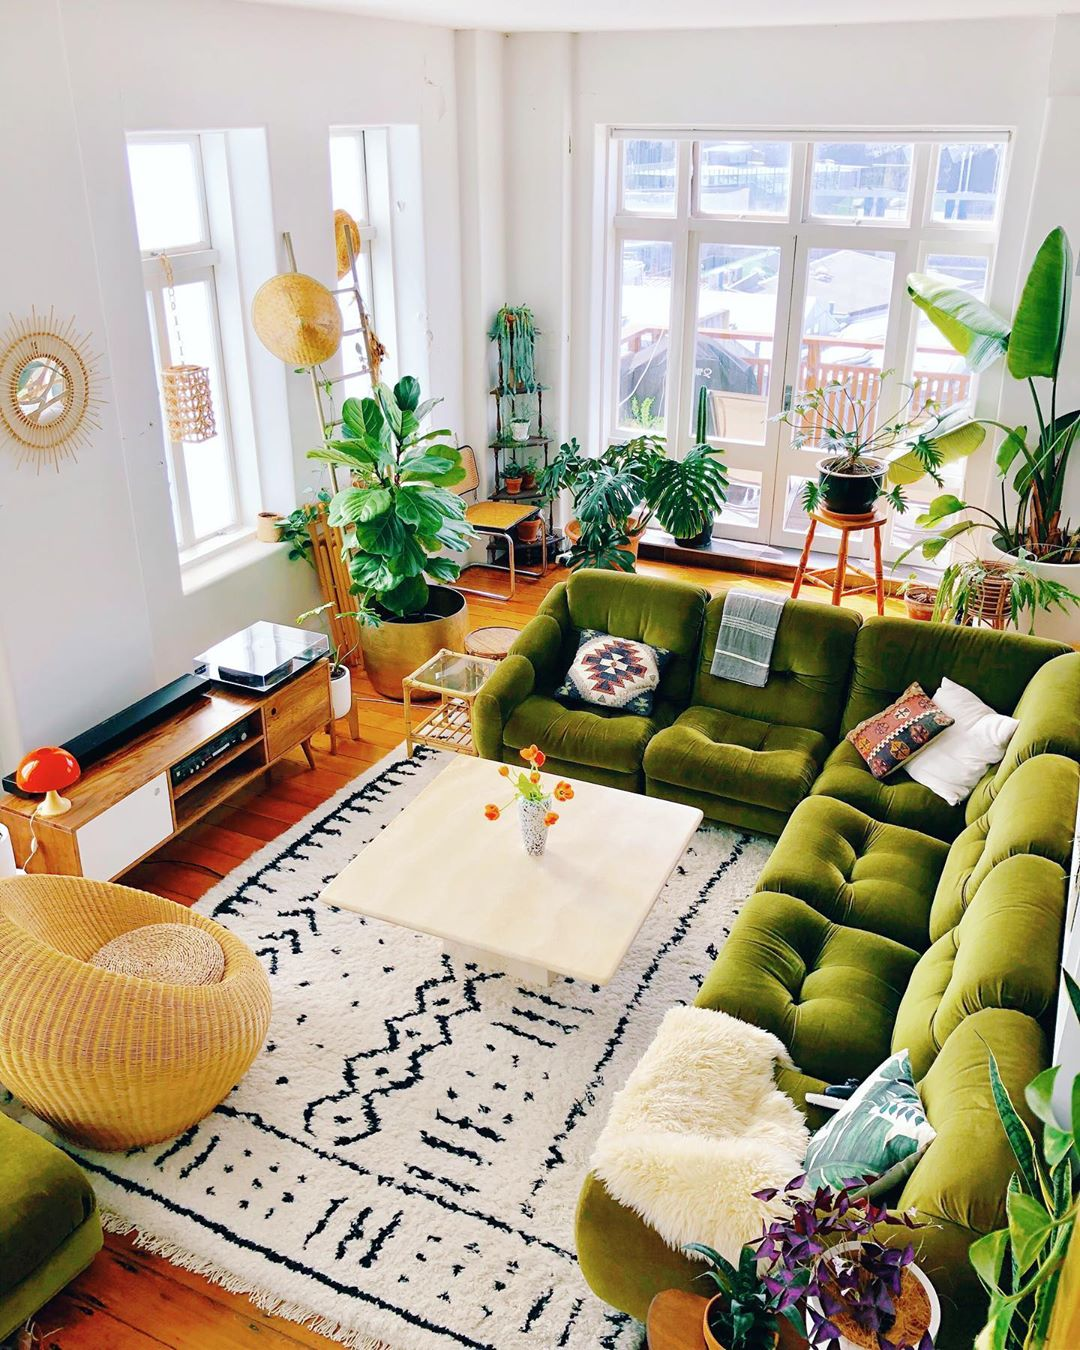 10 Living Room Designs With Colorful Sofas For Bold Design Lovers_1 colorful sofas 10 Living Room Designs With Colorful Sofas For Bold Design Lovers 10 Living Room Designs With Colorful Sofas For Bold Design Lovers 1